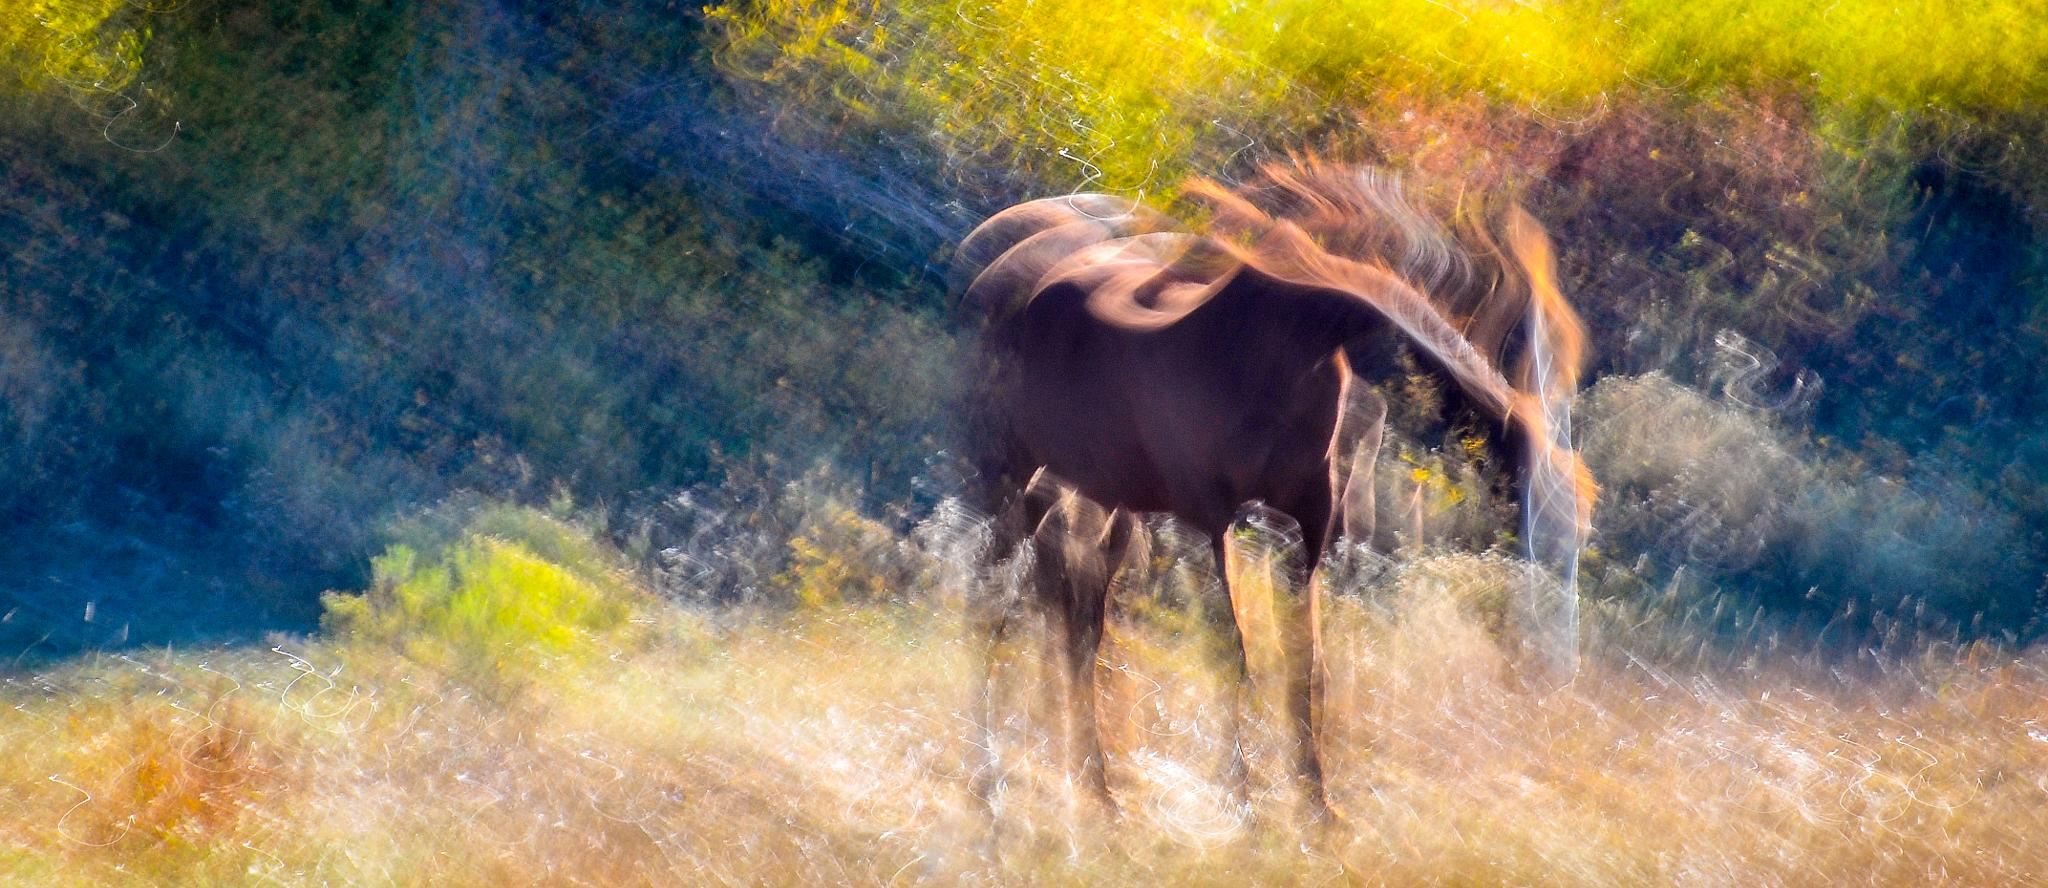 Horse in Meadow by On A Walk Photography